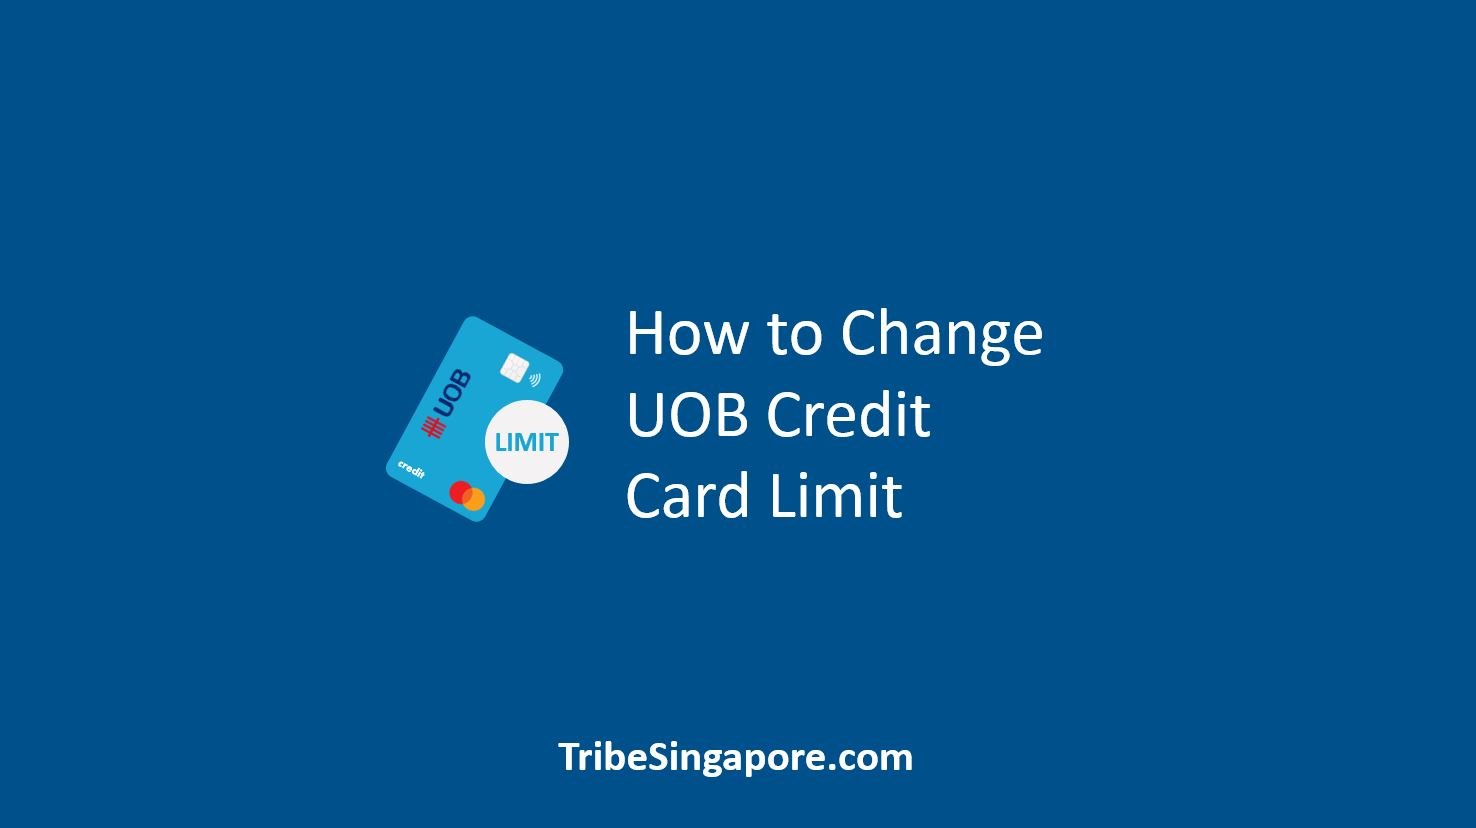 How to Change UOB Credit Card Limit